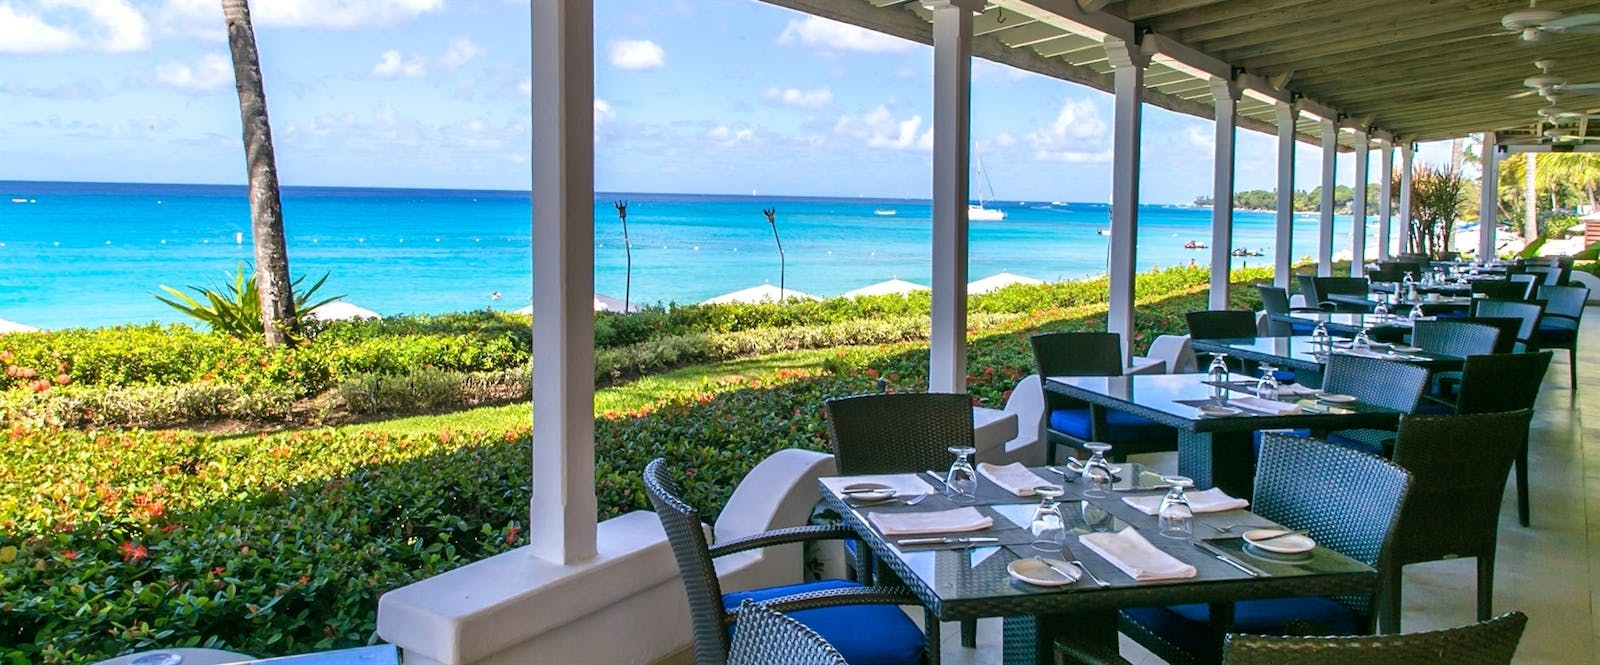 Taboras Restaurant at  Fairmont Royal Pavilion, Barbados